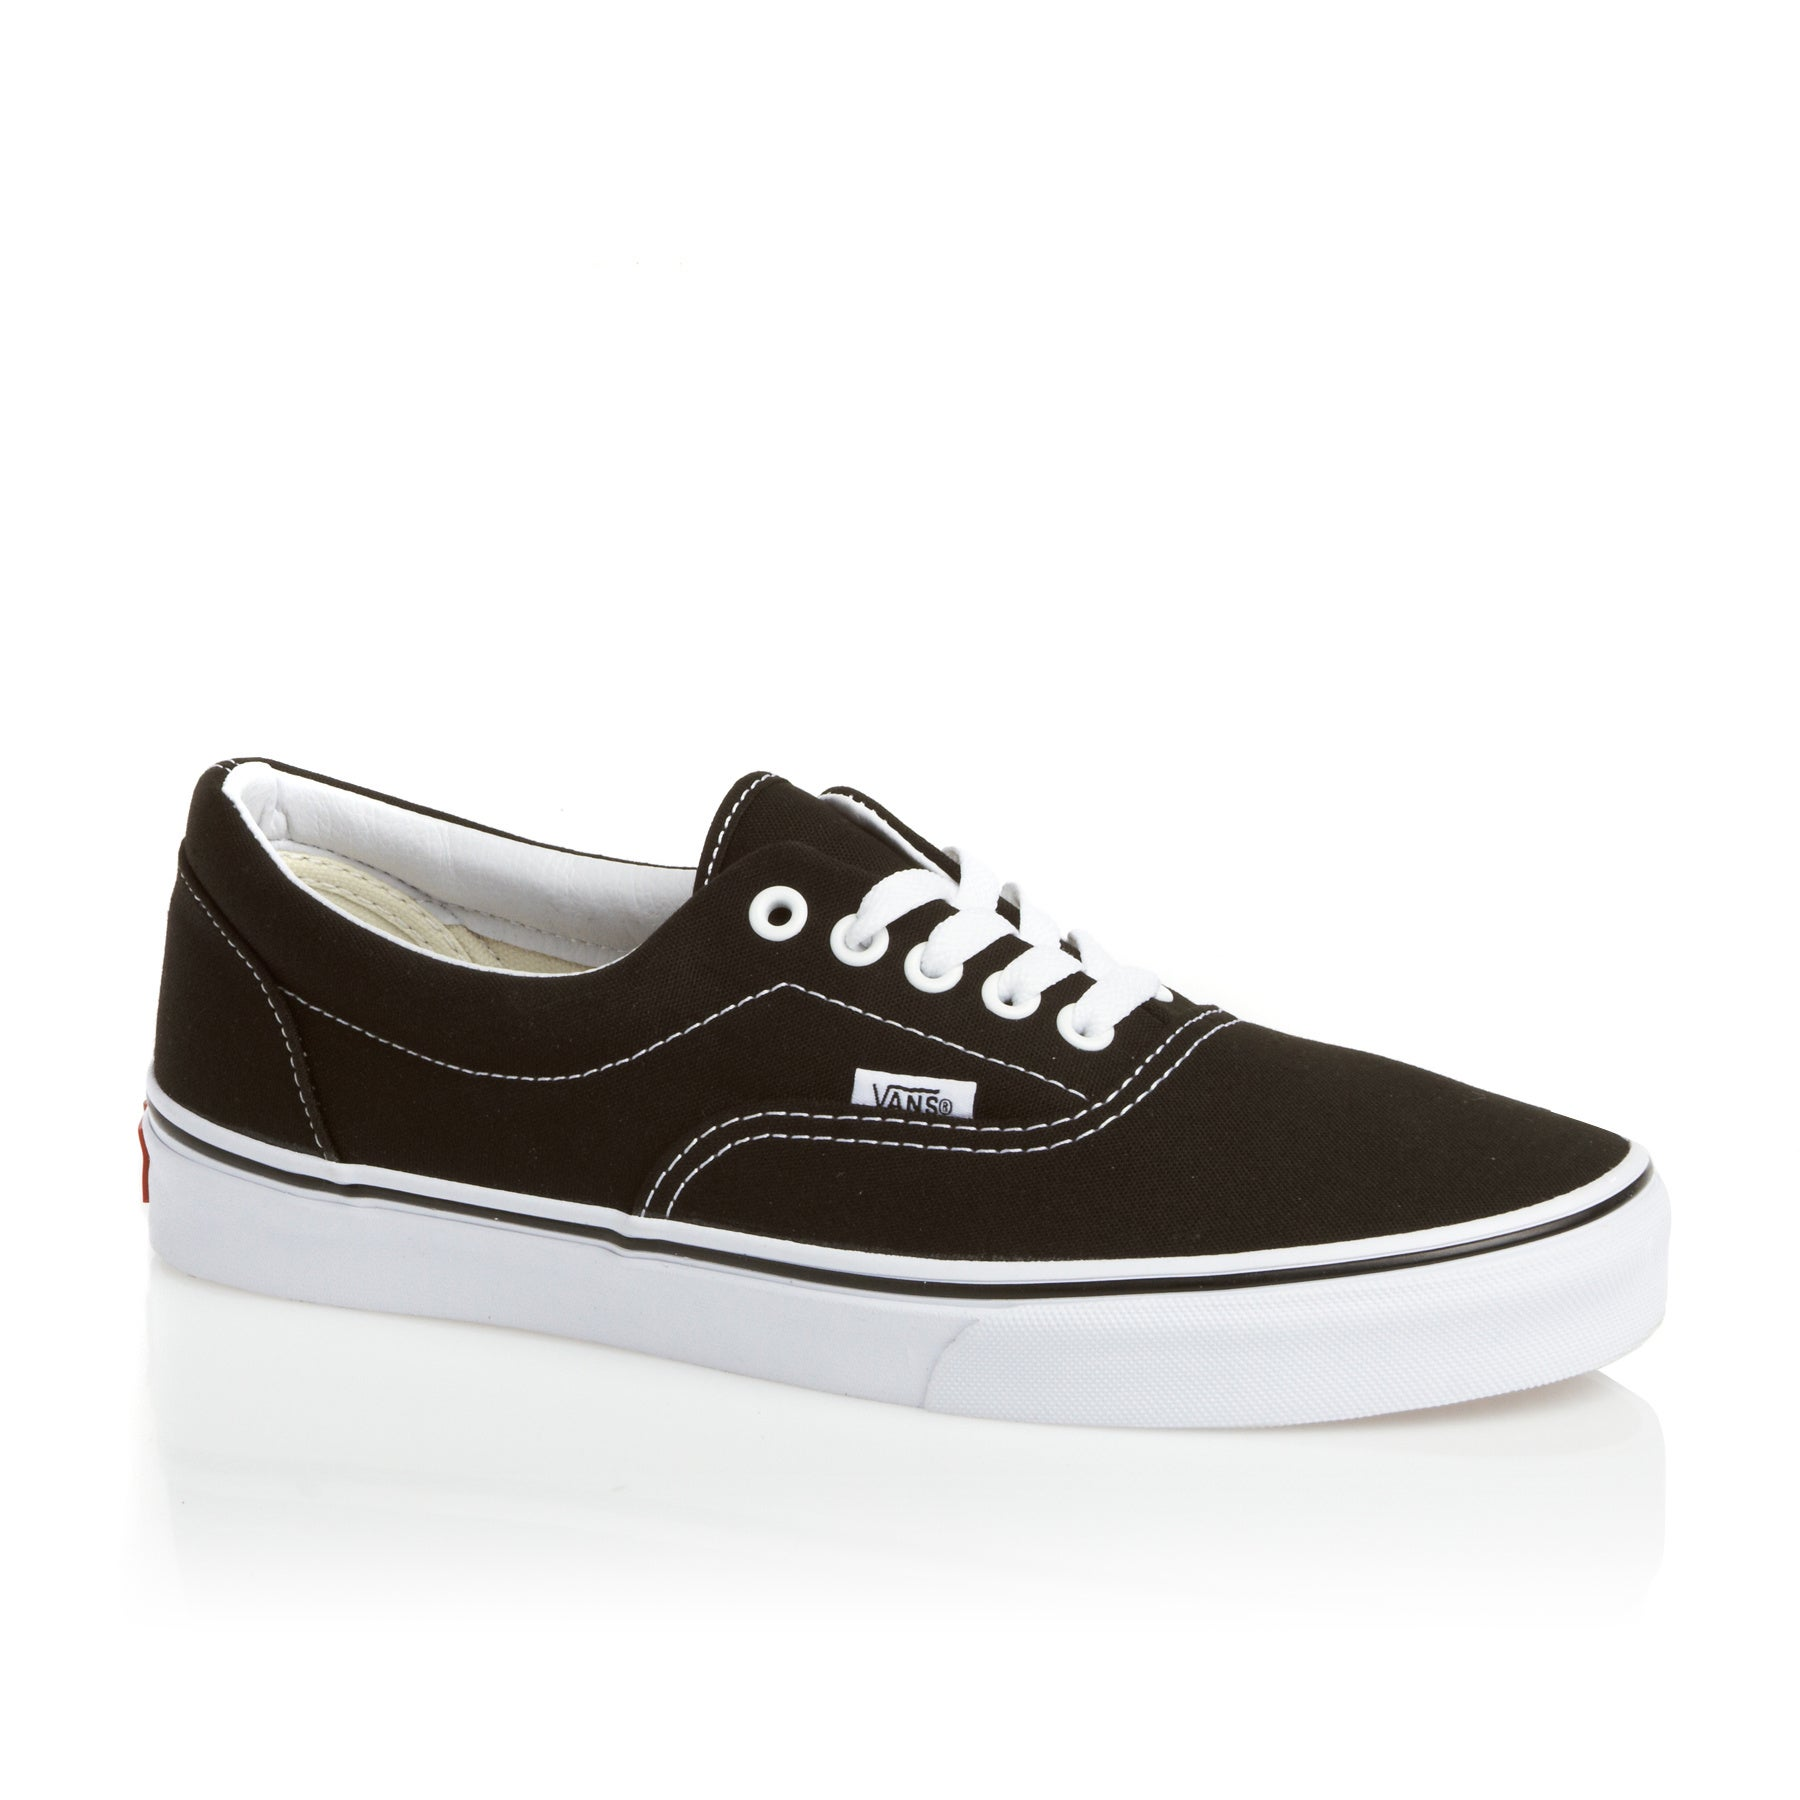 Dress Shoes Vans Era - Black